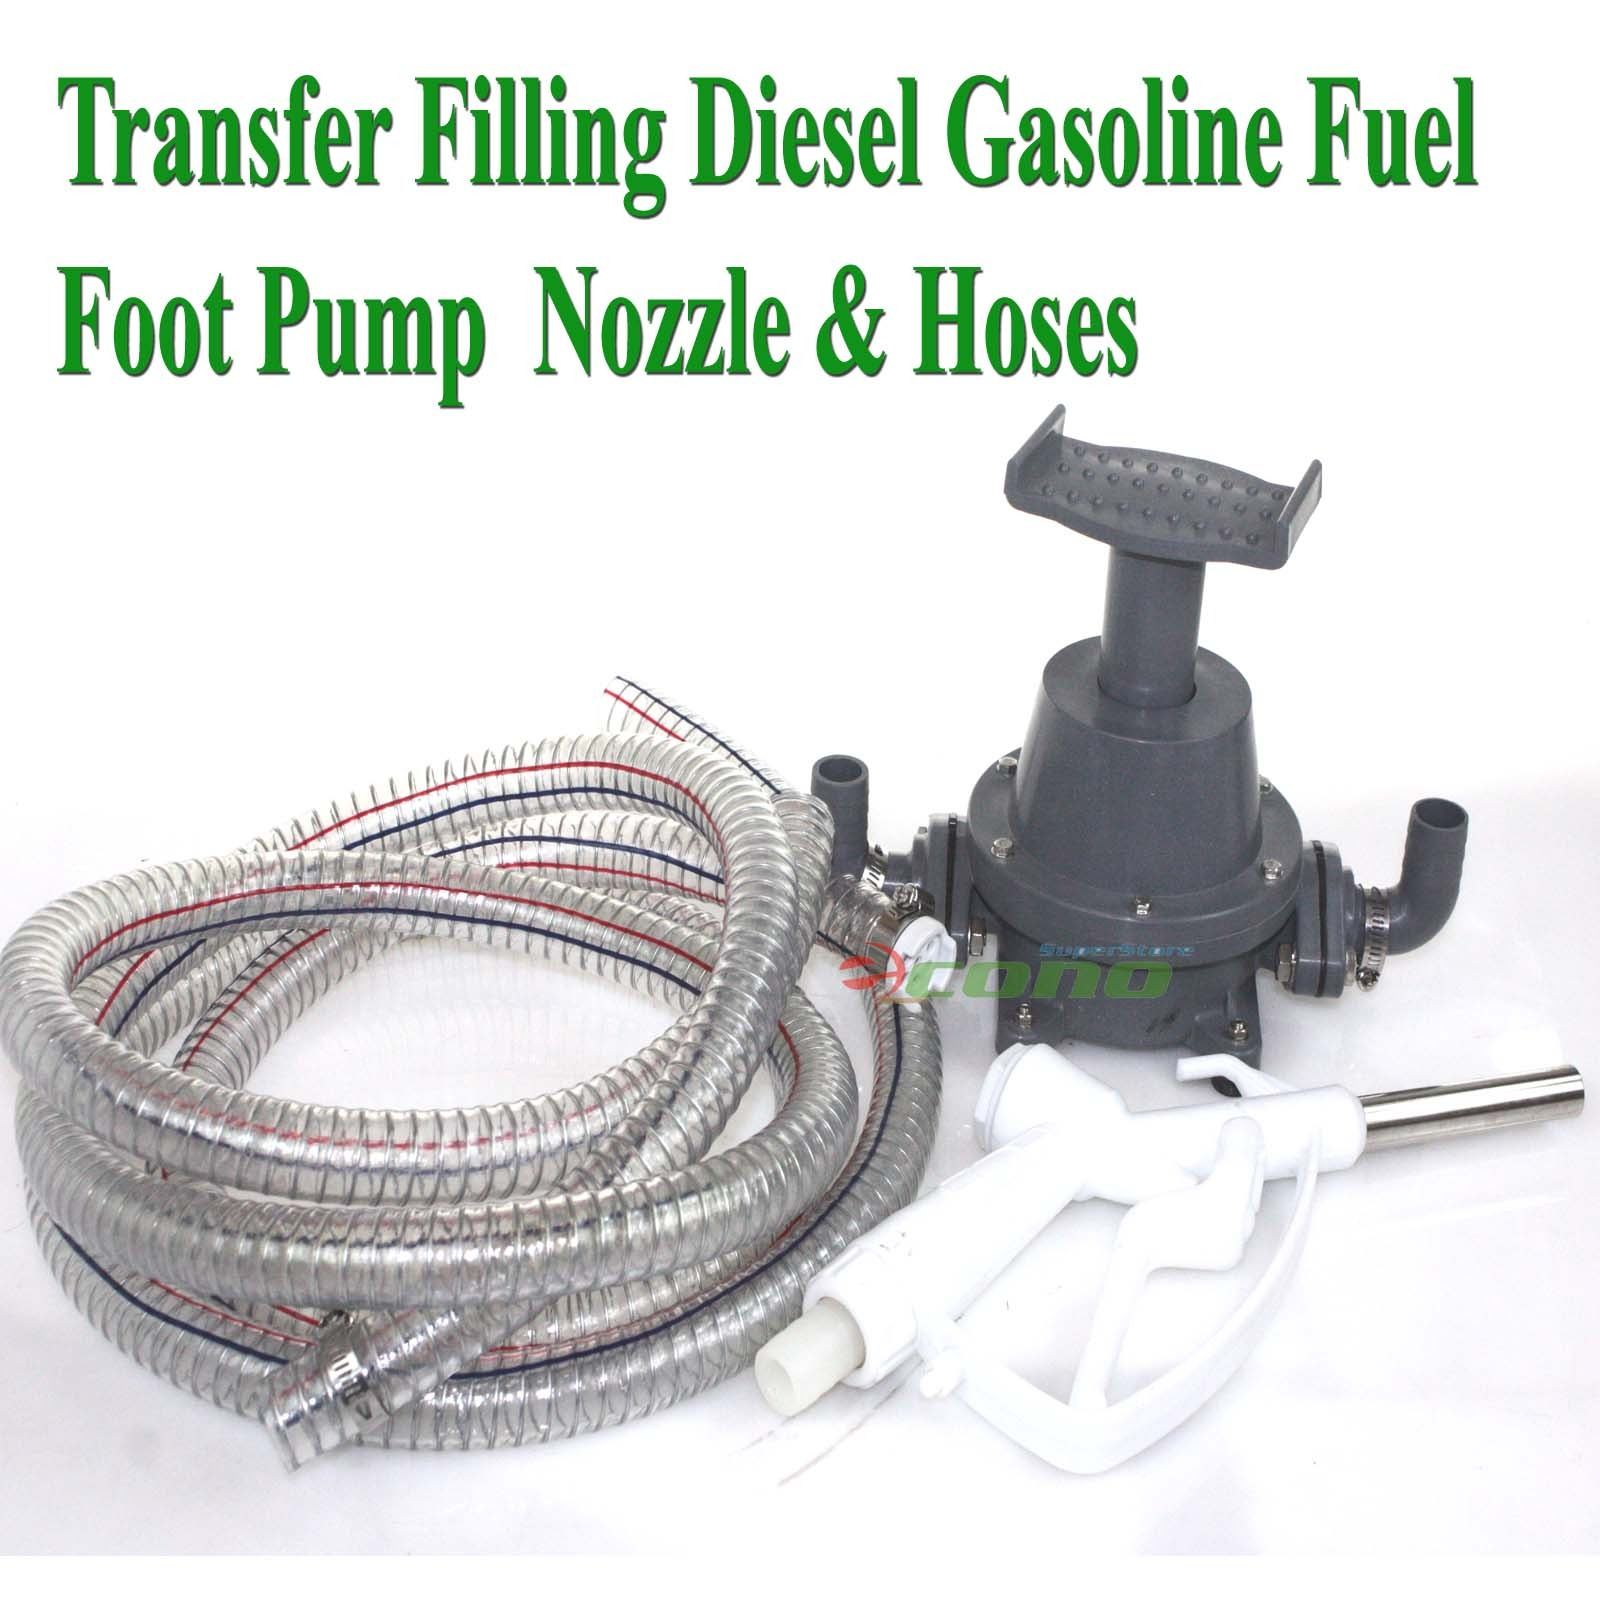 Transfer Refilling Gasoline Diesel Fuel Water Foot Pump Kit Nozzle w 6' Hose